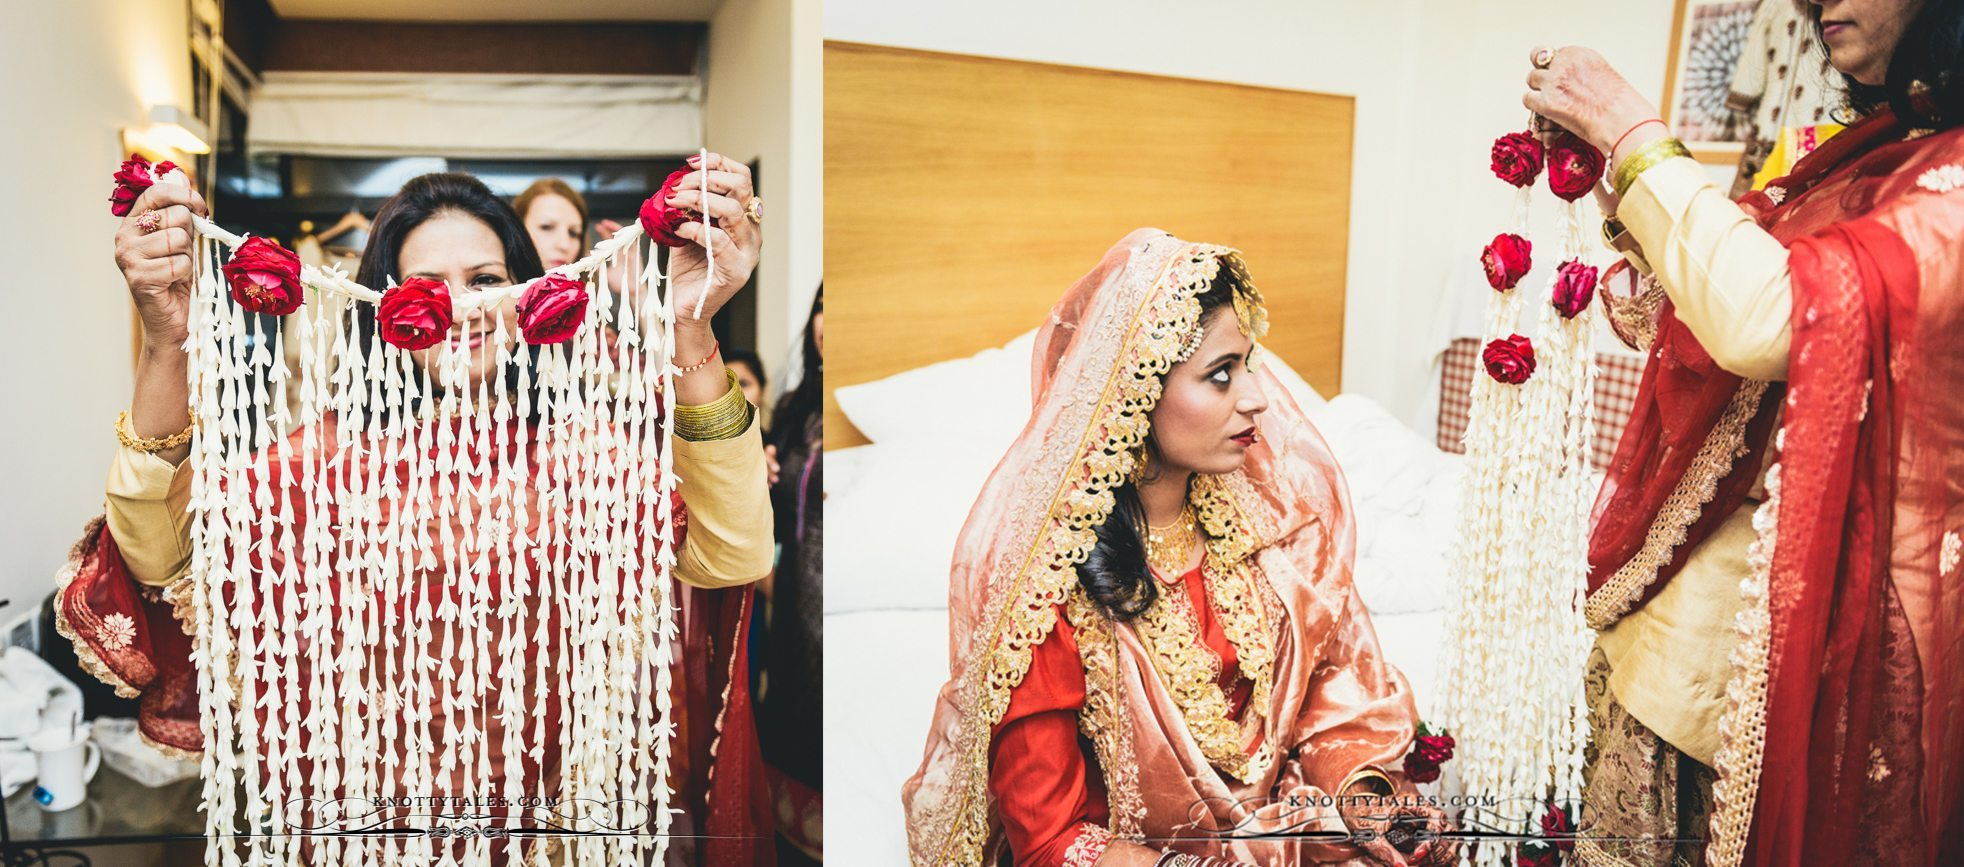 Jeevan Saify Wedding Knottytales Gurudwara Nikah Woods Resort DLF Phase I Gurgaon Sector 46 Photographer width=